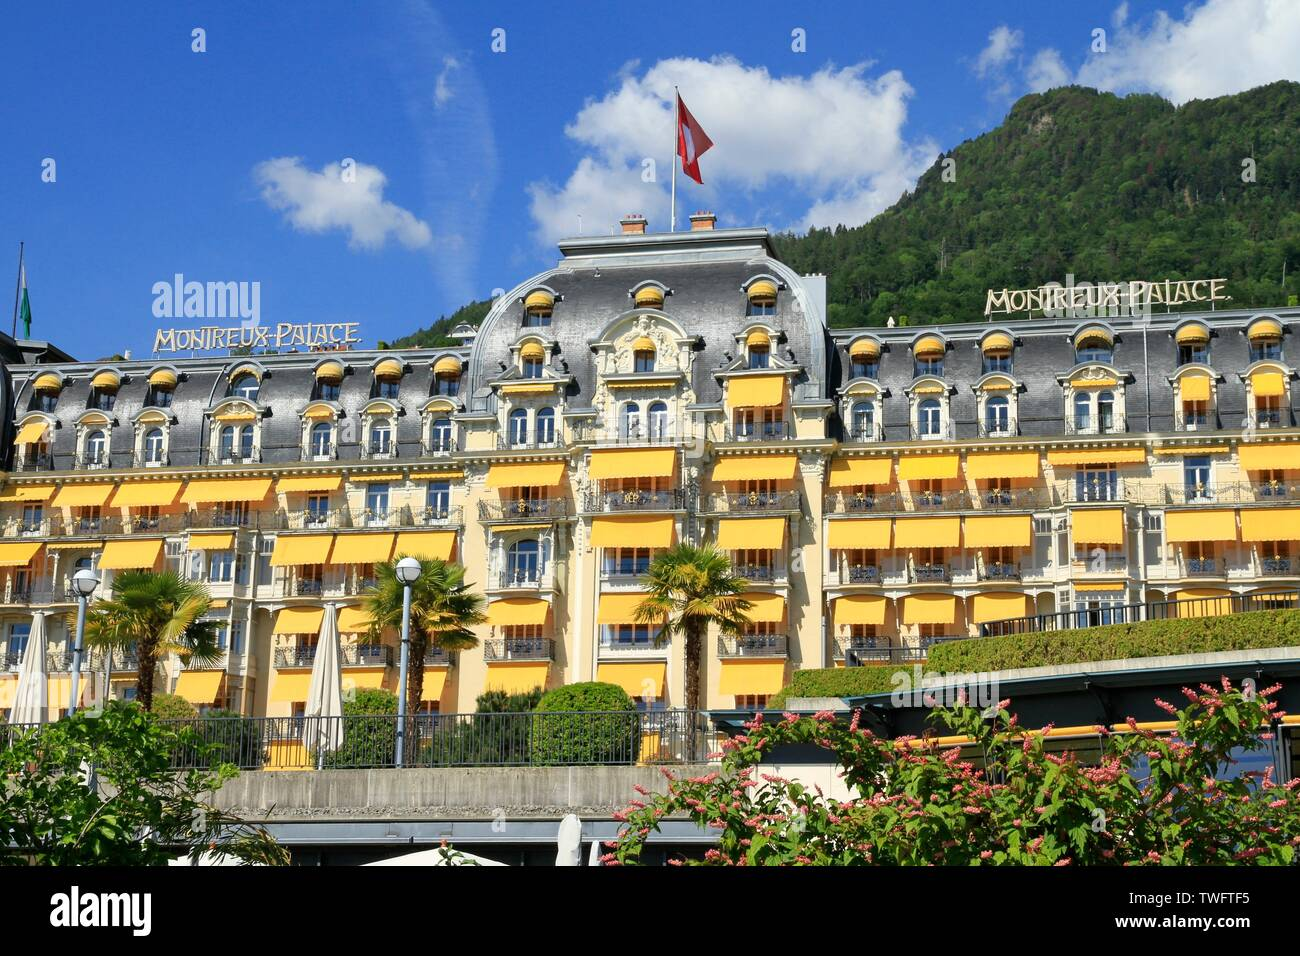 Illustration of the city of Montreux, Swiss municipality of the canton of Vaud, located in the district of the Riviera-Pays-d Enhaut, in the Alps. Stock Photo